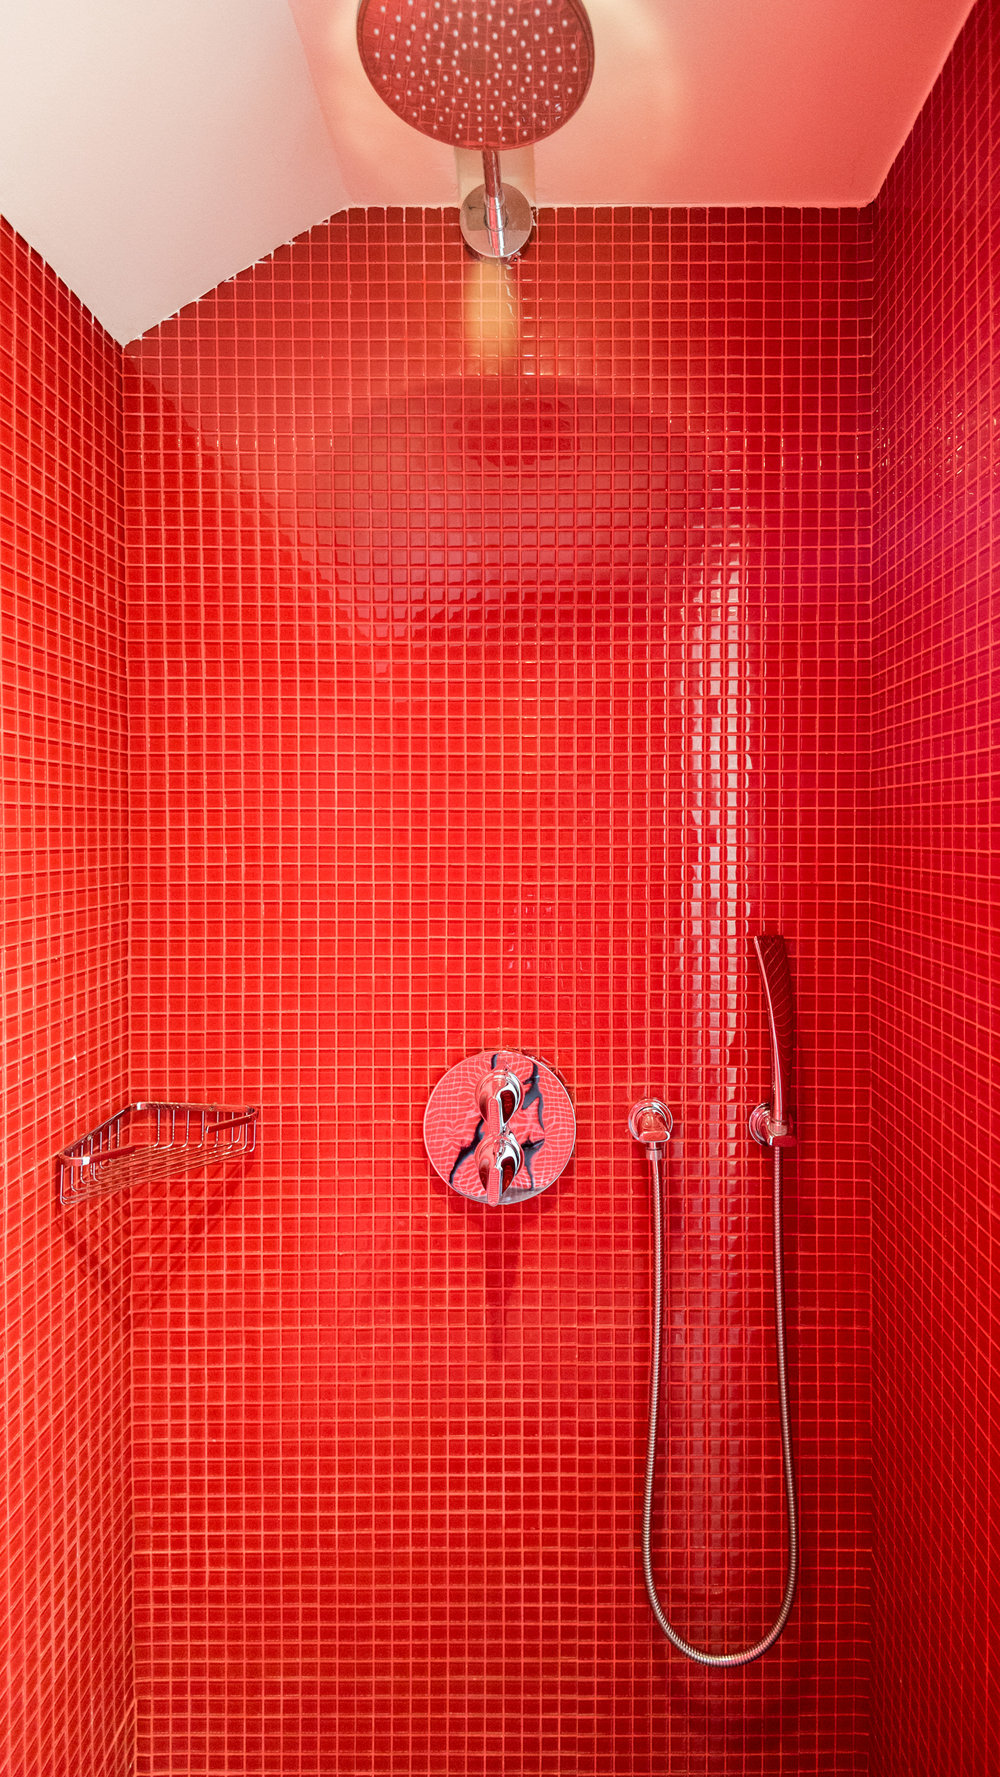 Shower Area  Art Executive Club Suite - The Vagabond Club, A Tribute Portfolio Hotel, Singapore